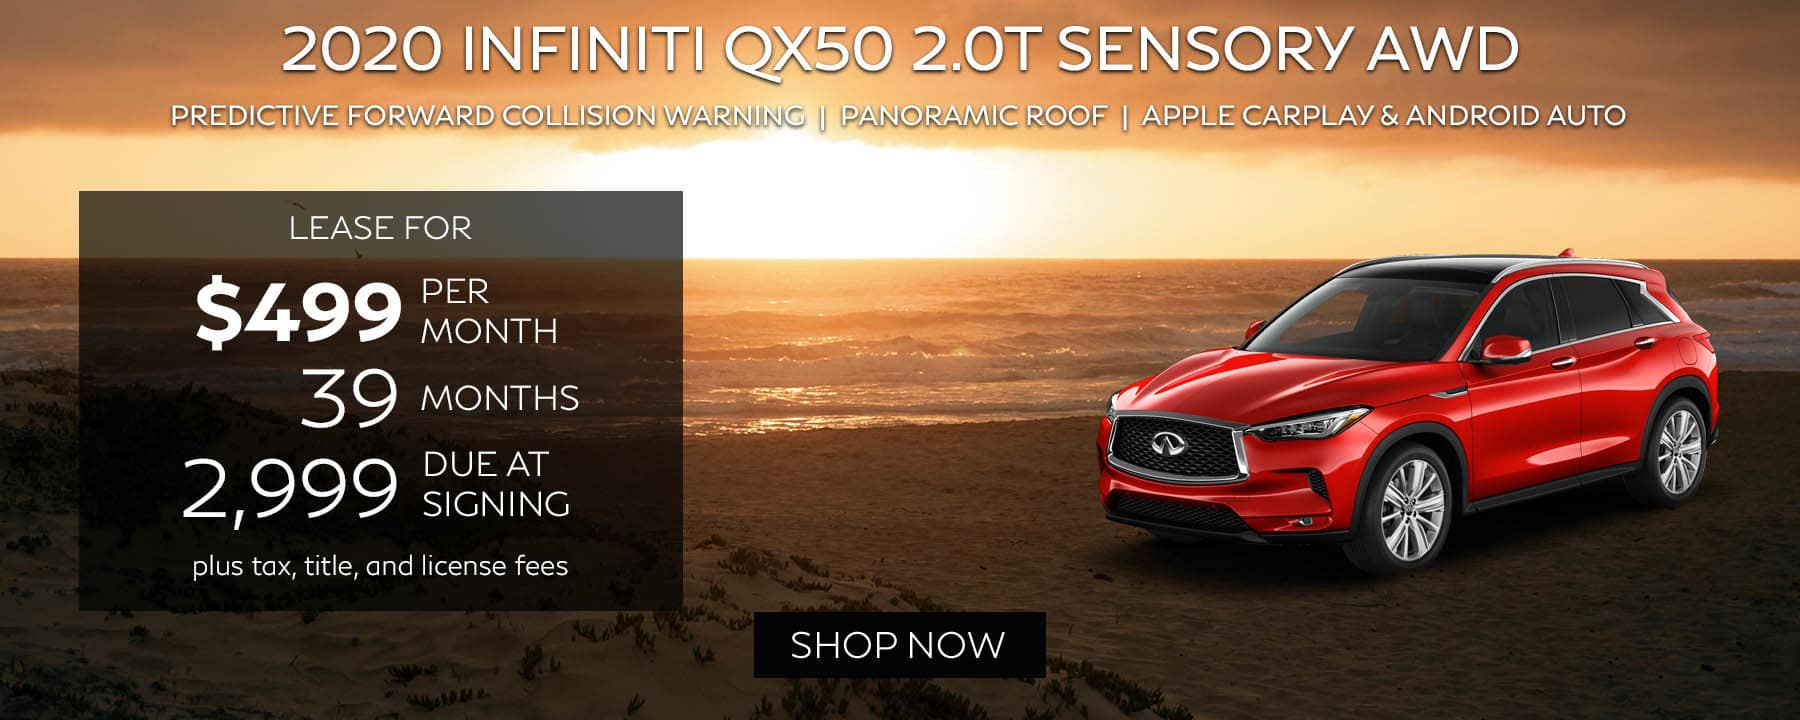 Lease a 2020 INFINITI QX50 2T SENSORY AWD for $499 per month with $2,999 due at signing